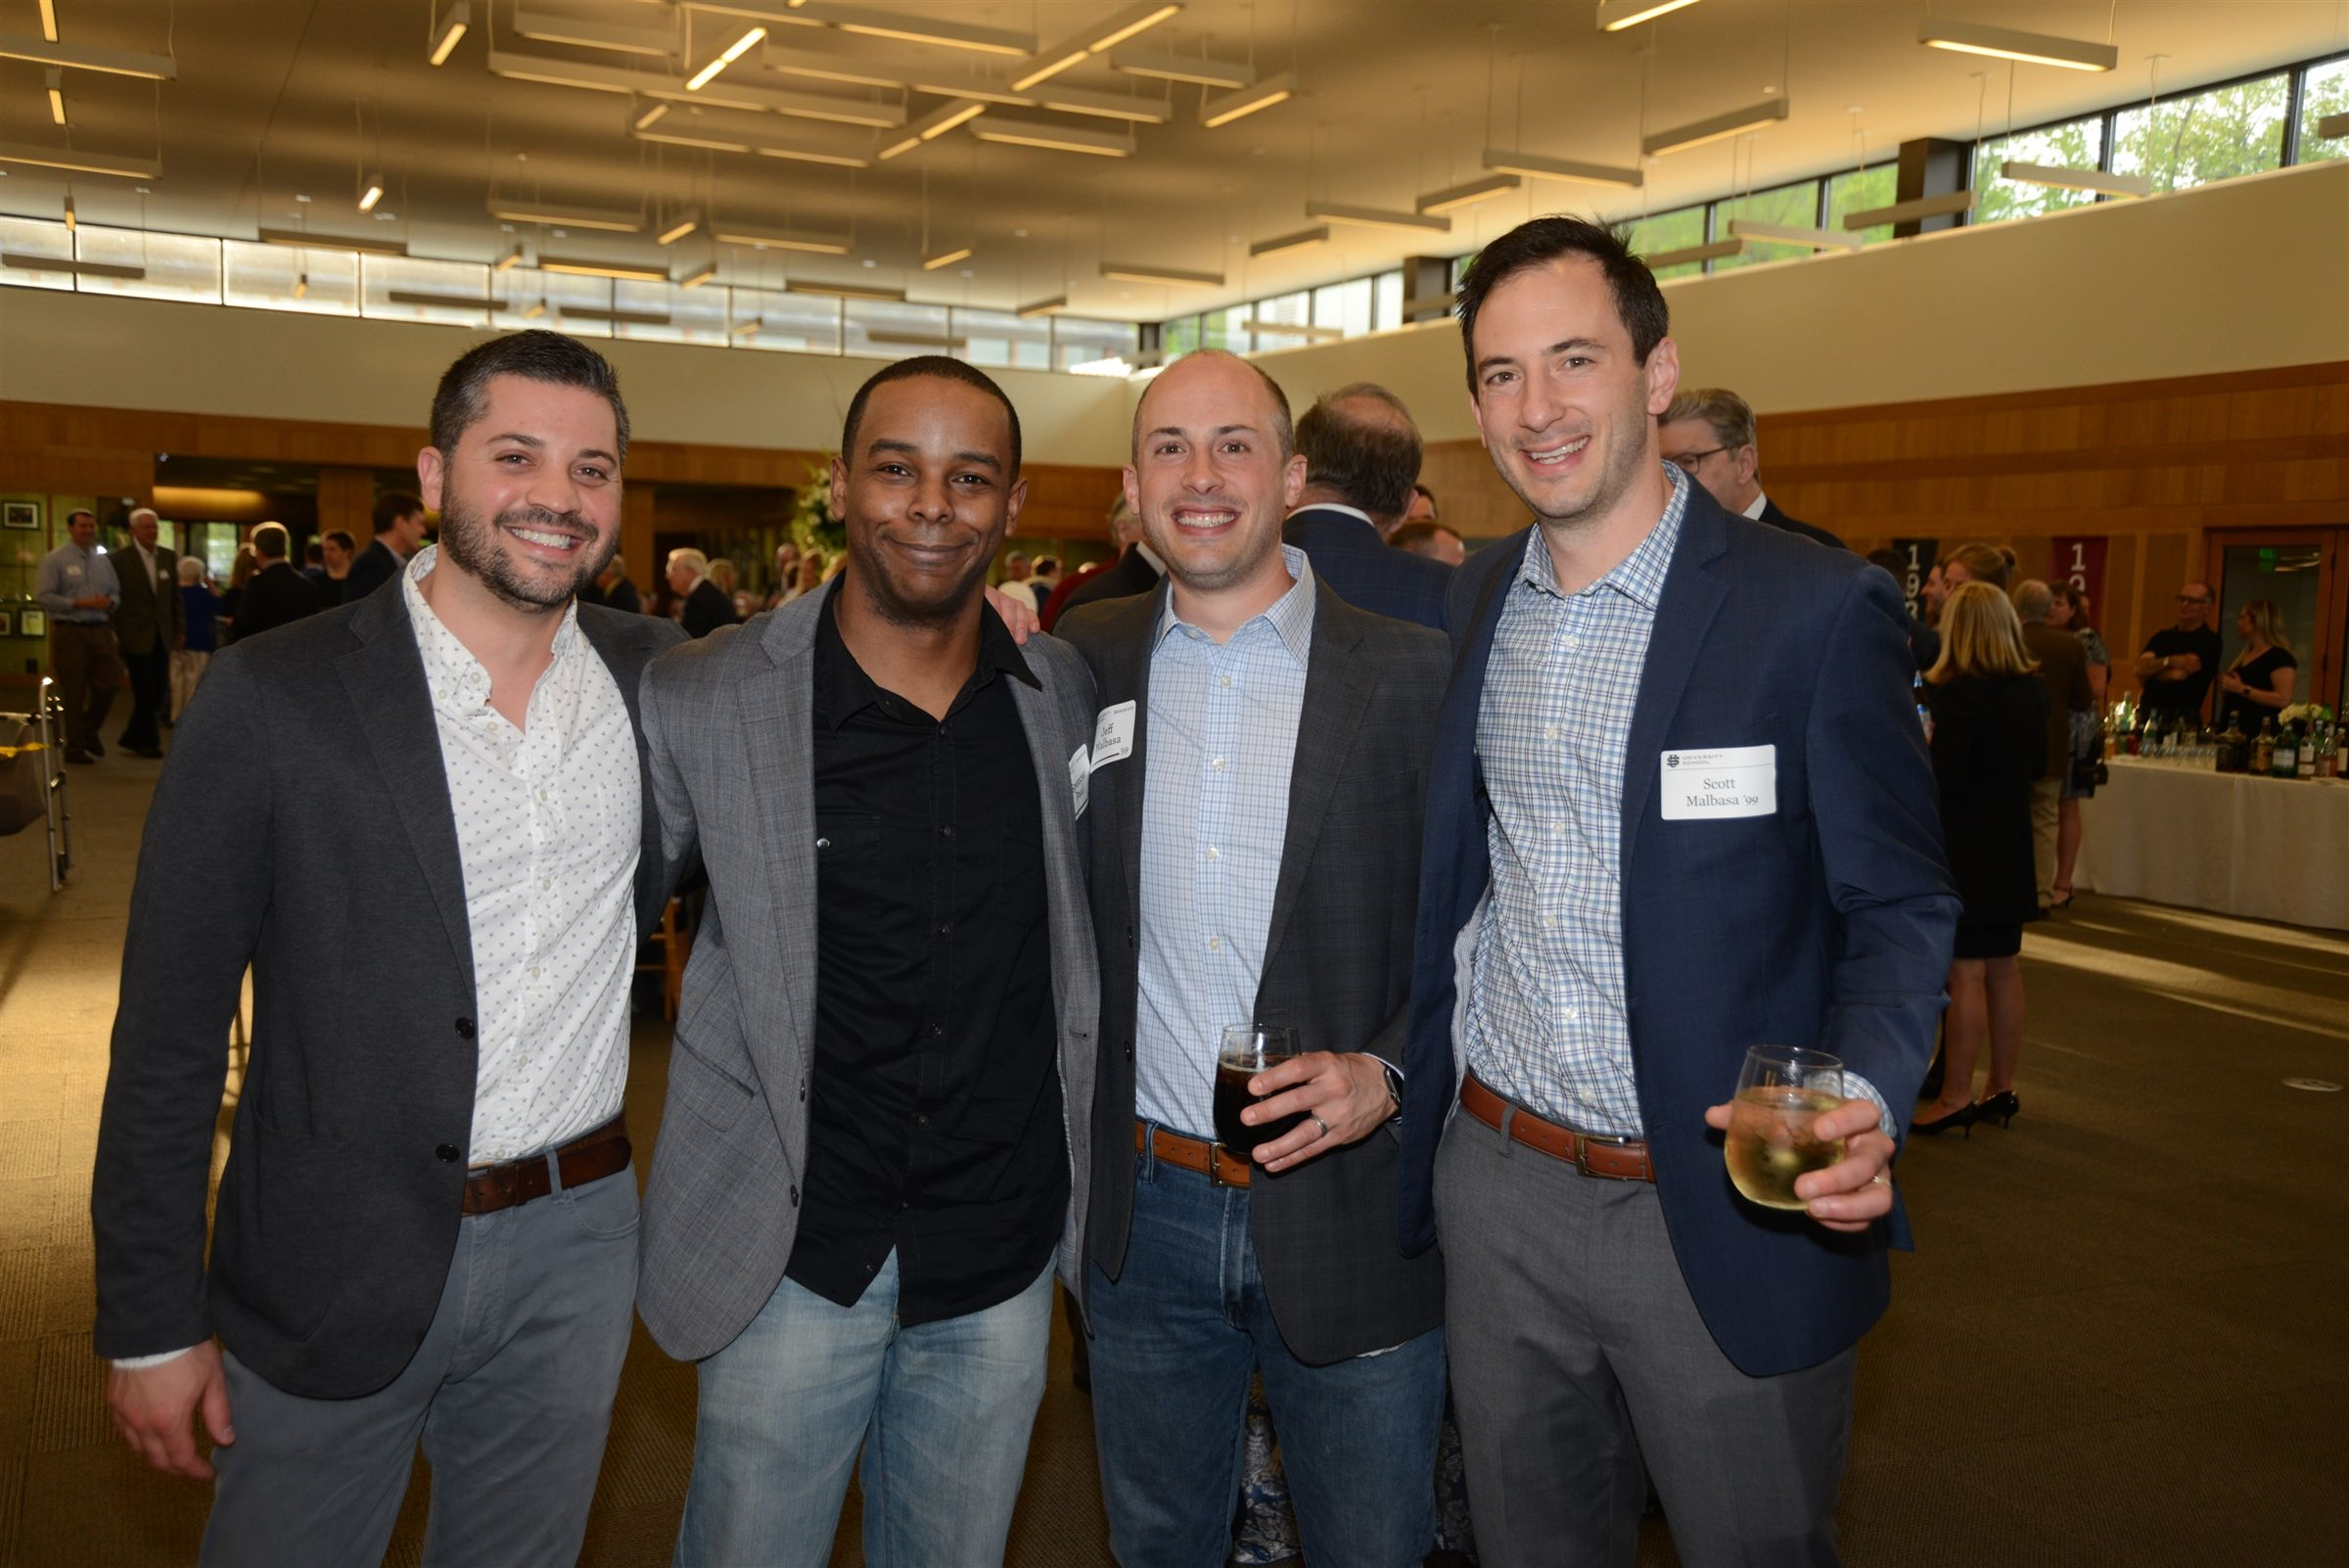 The Hail University Reception has become a weekend tradition. Cheers to Brian Hochman '99, Spencer Paul '99, Jeff Malbasa '99, and Scott Malbasa '99, and all of the alumni who came back to US!